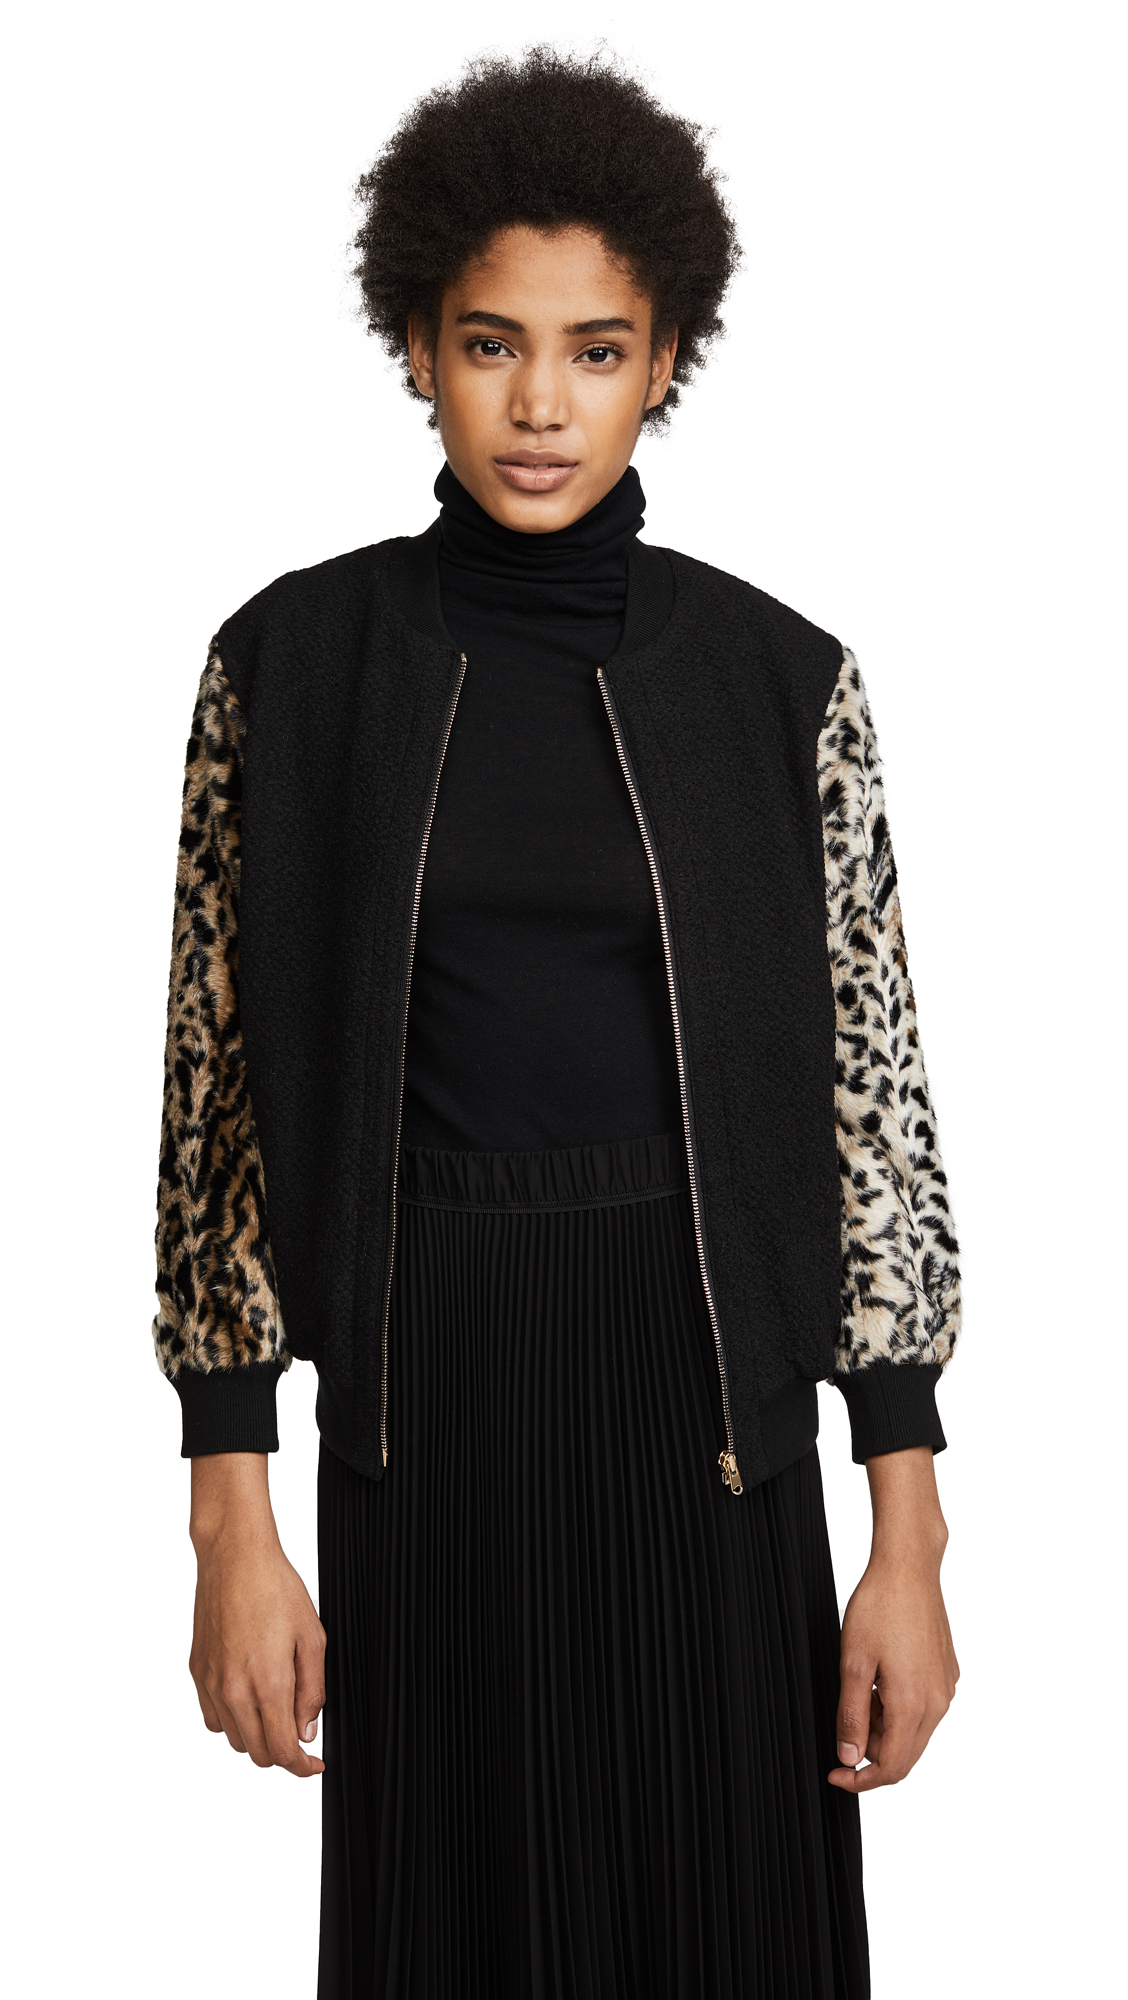 Club Monaco Tay Bomber Jacket - Black Multi